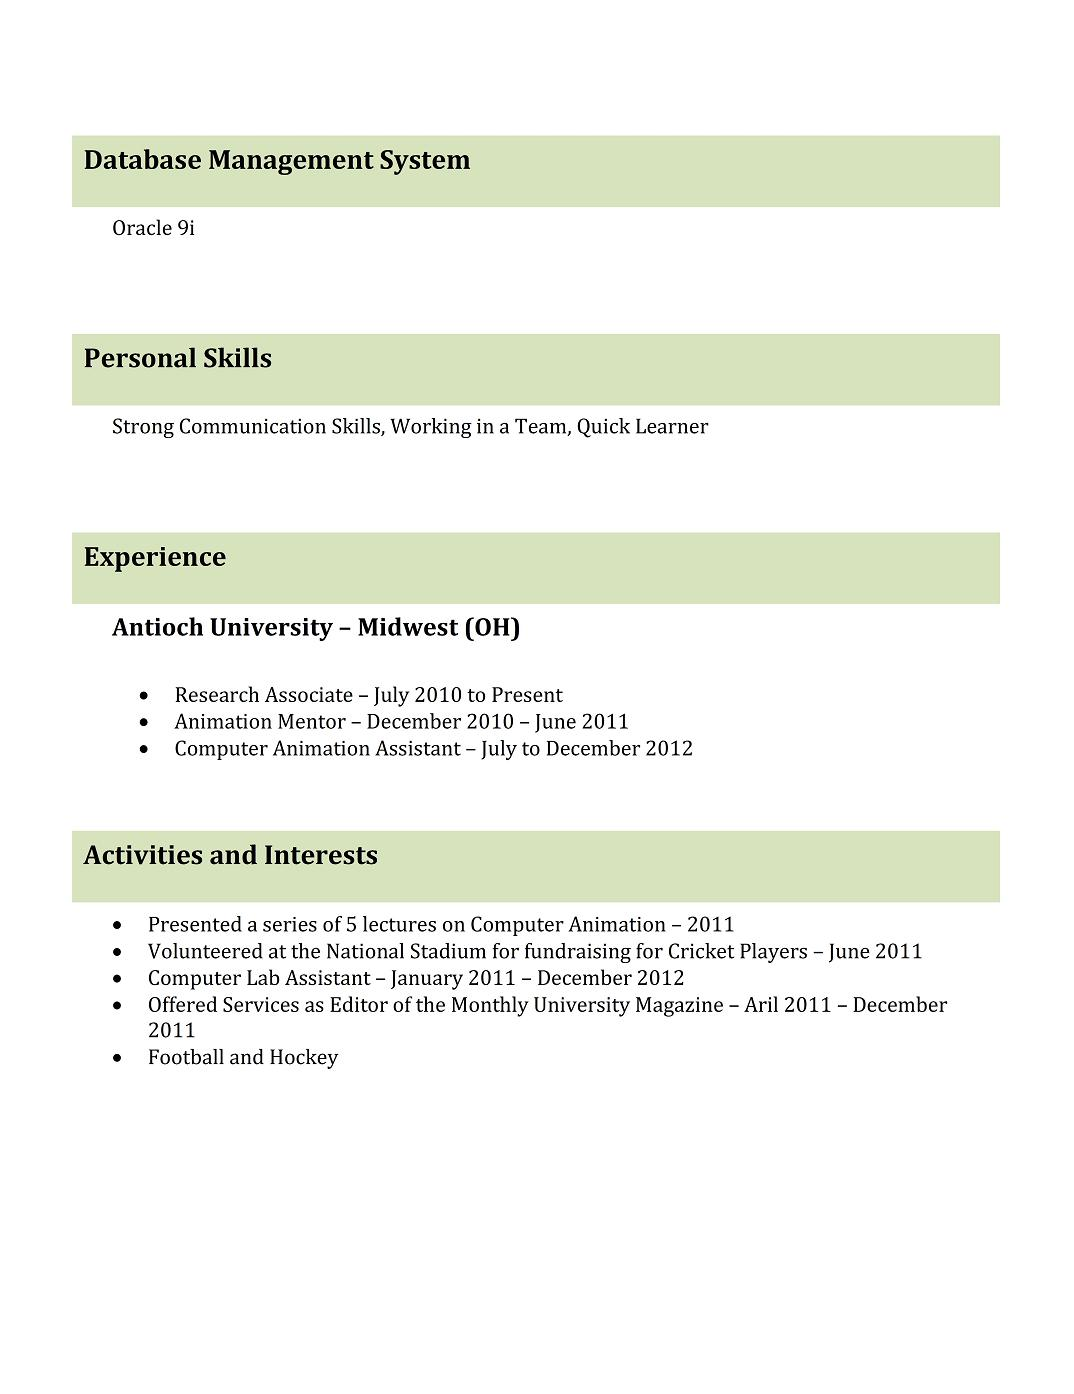 freshers resume format 2016 best professional resume templates select from great fonts including calibri and arial and make sure you maintain the size to not less than 10 and 12 2016 curriculum vitae format